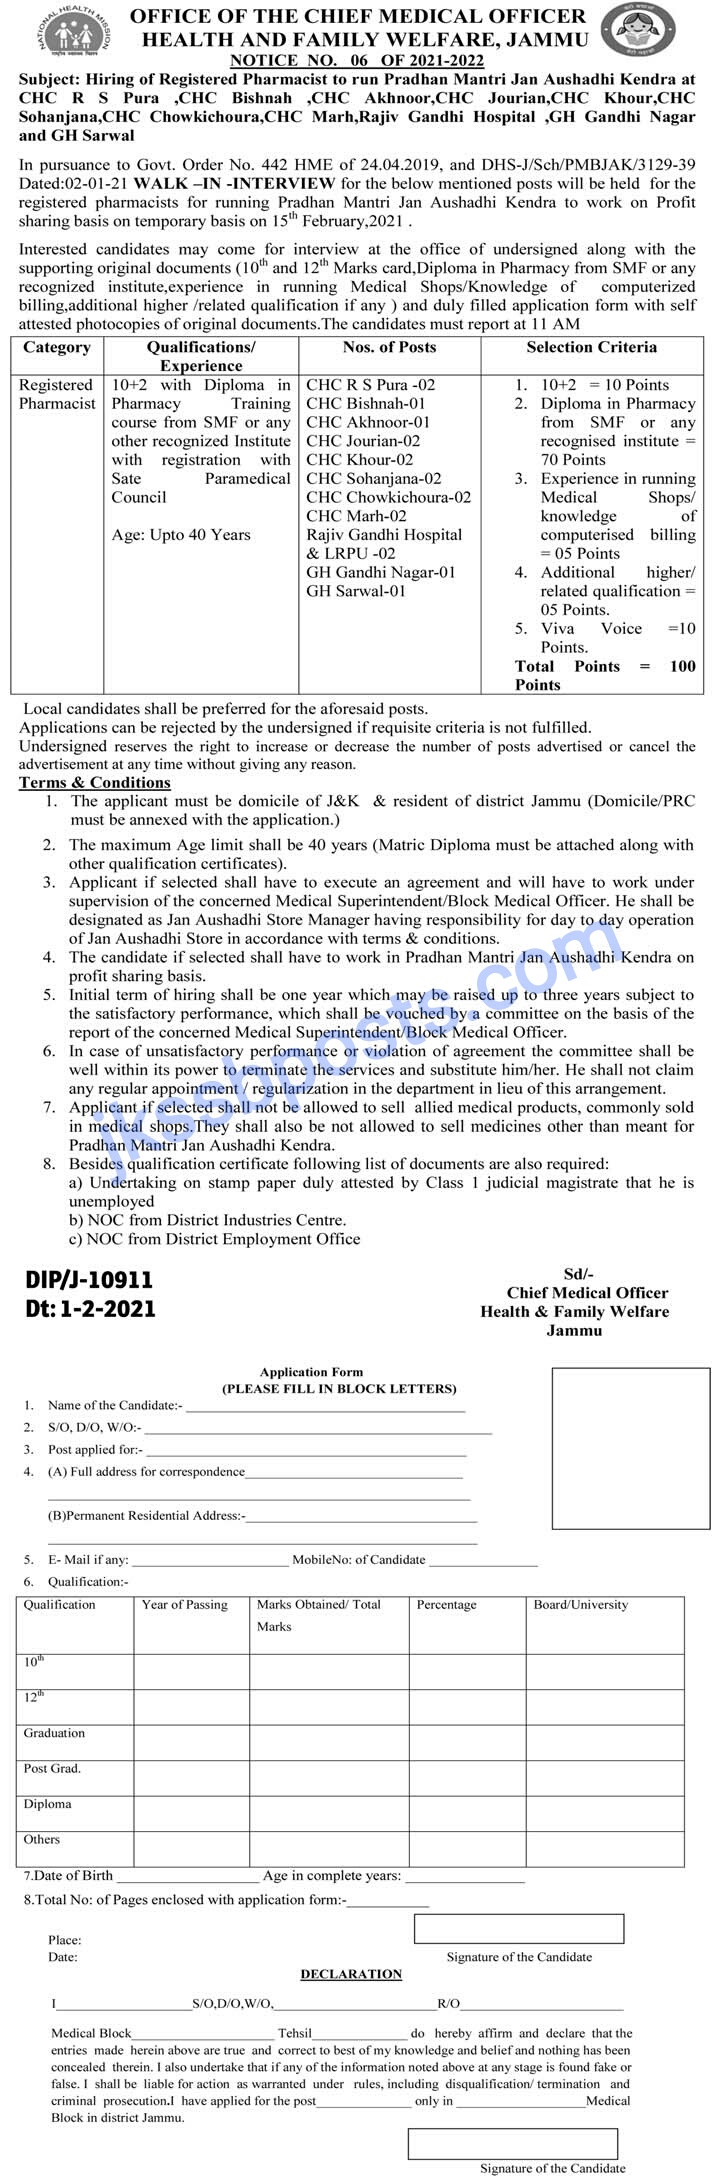 Jobs in Health and Family Welfare department, Jammu